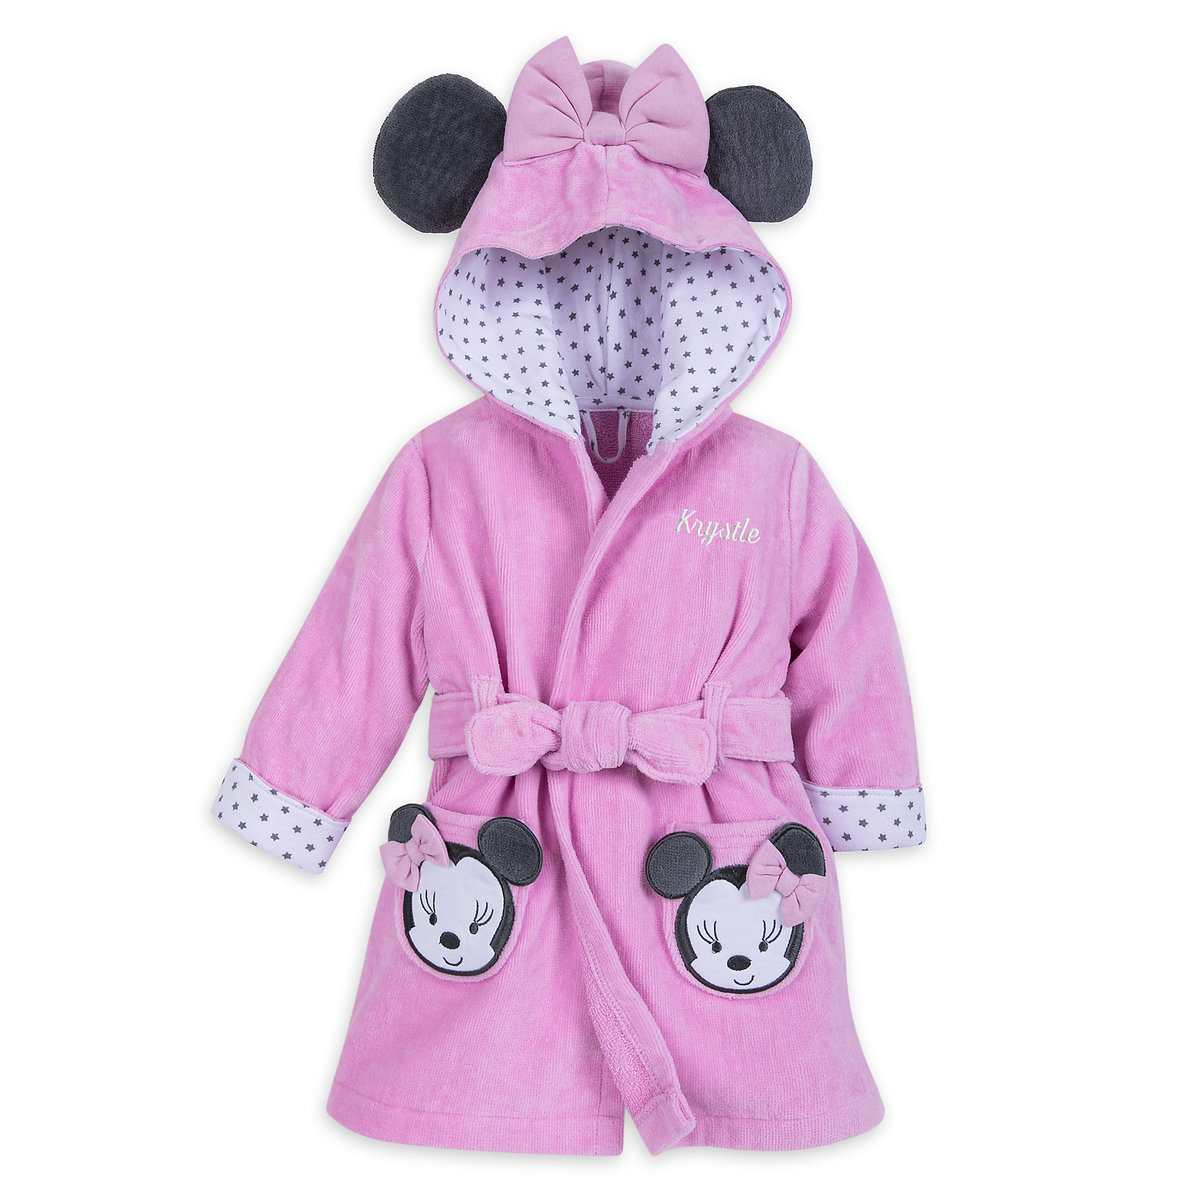 9dbc96b10 Product Image of Minnie Mouse Hooded Bath Robe for Baby - Personalizable # 1